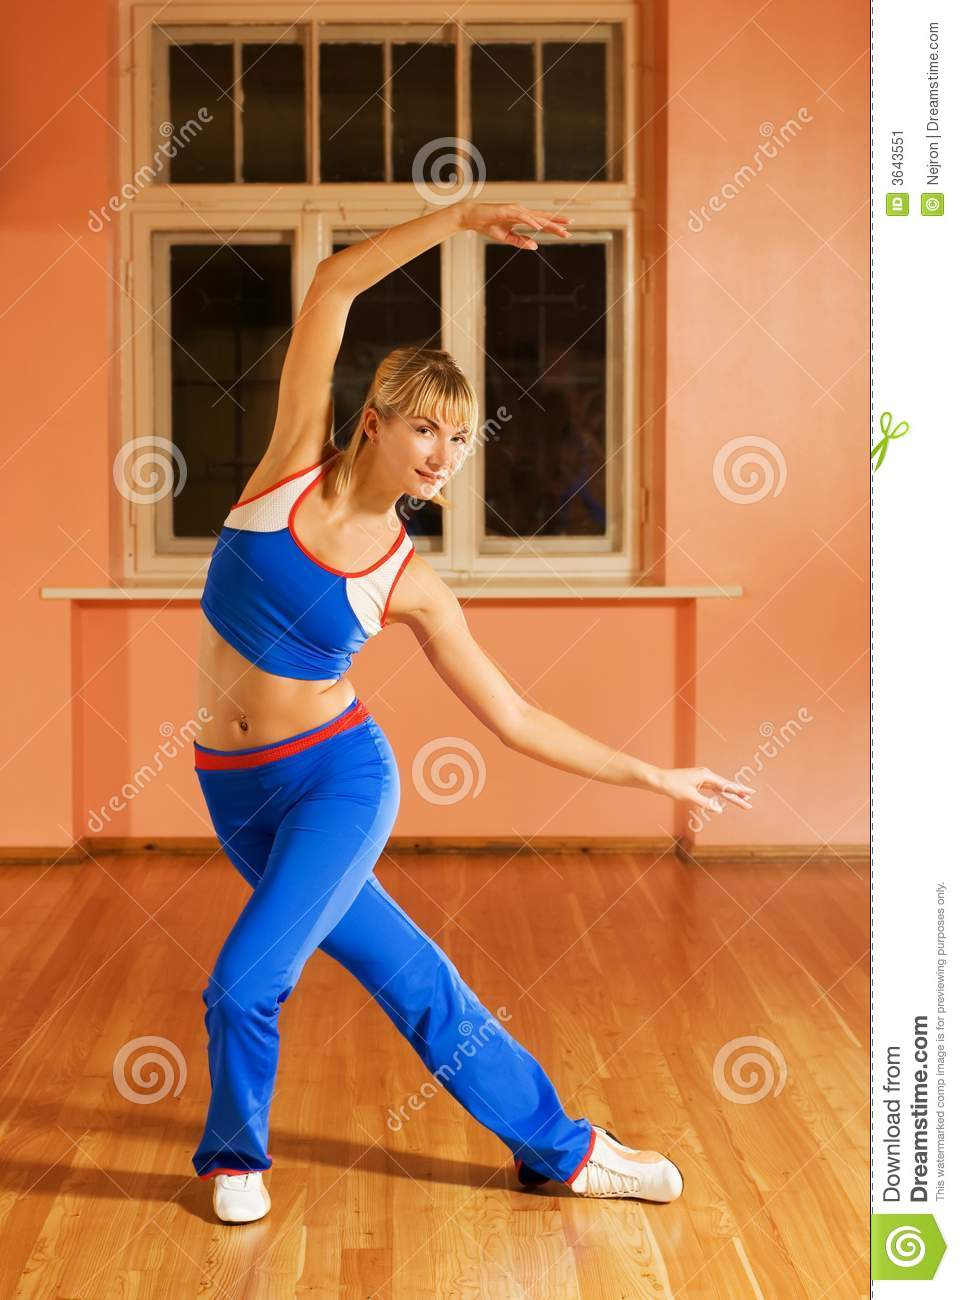 Download Modern dance trainer stock image. Image of blond, blue - 3643551